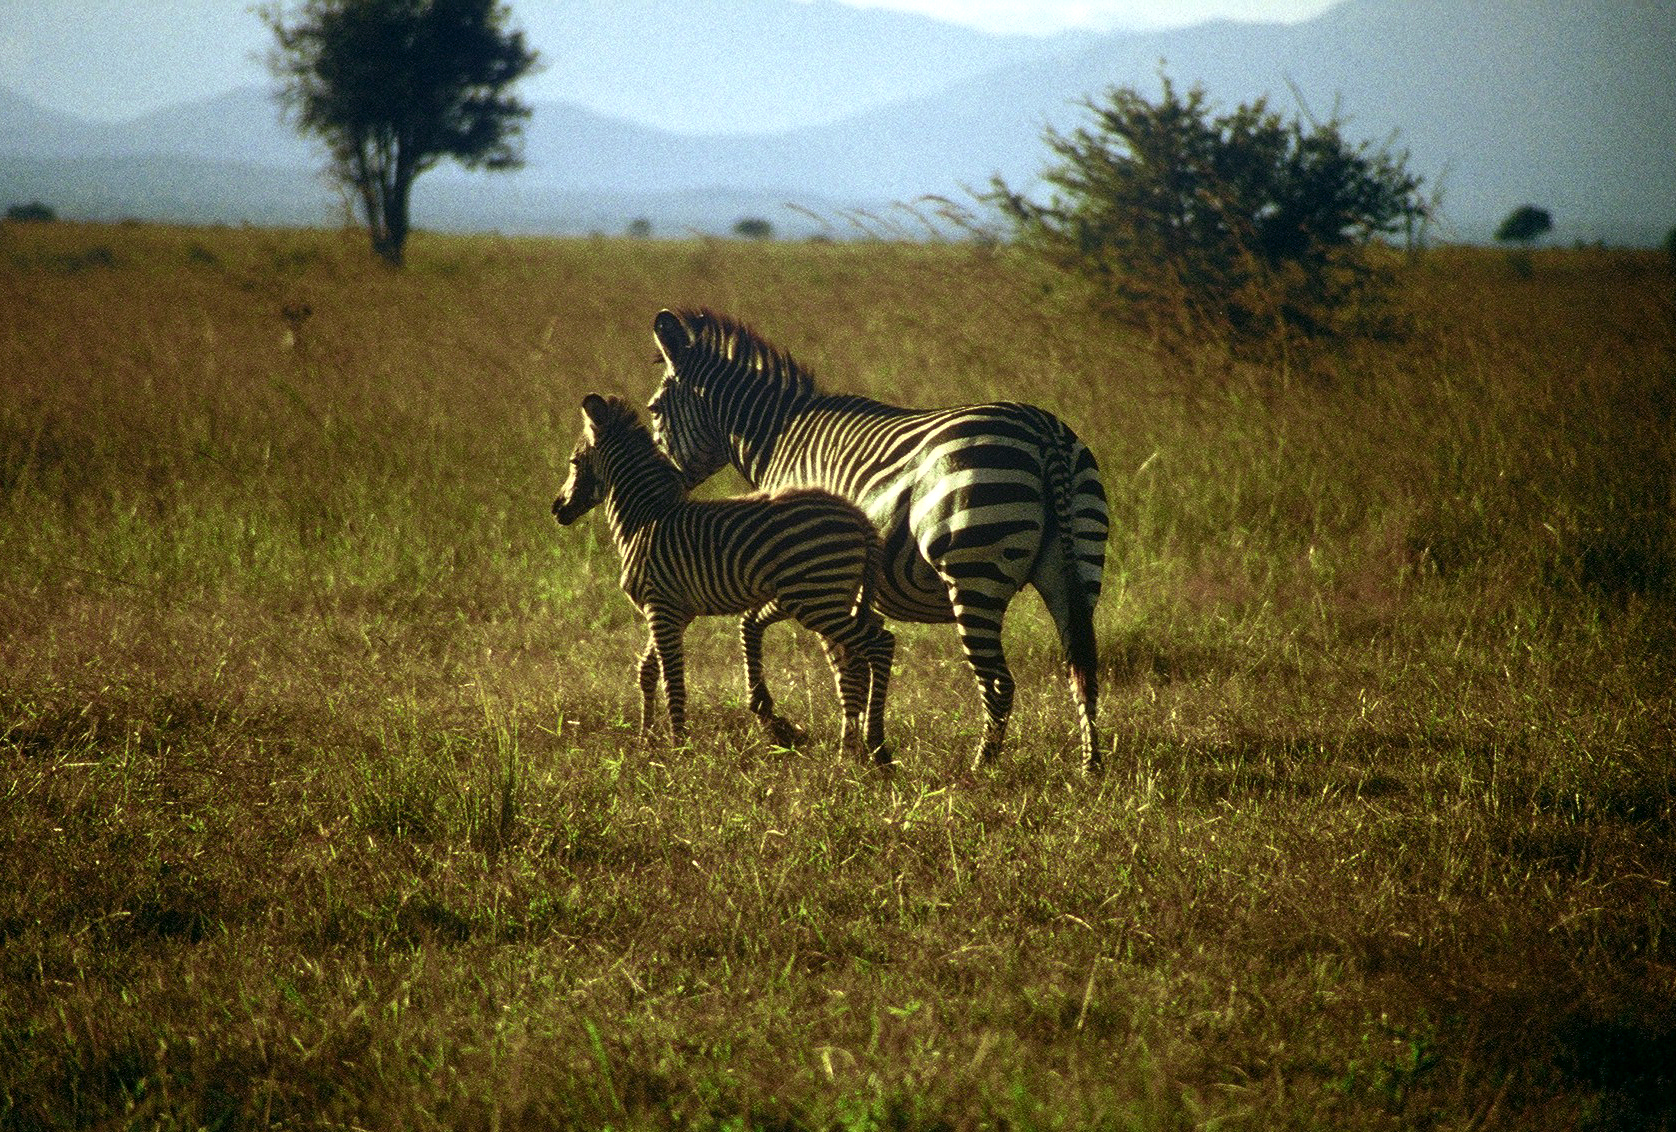 PLAINS ZEBRA WITH PUP (Equus quagga)